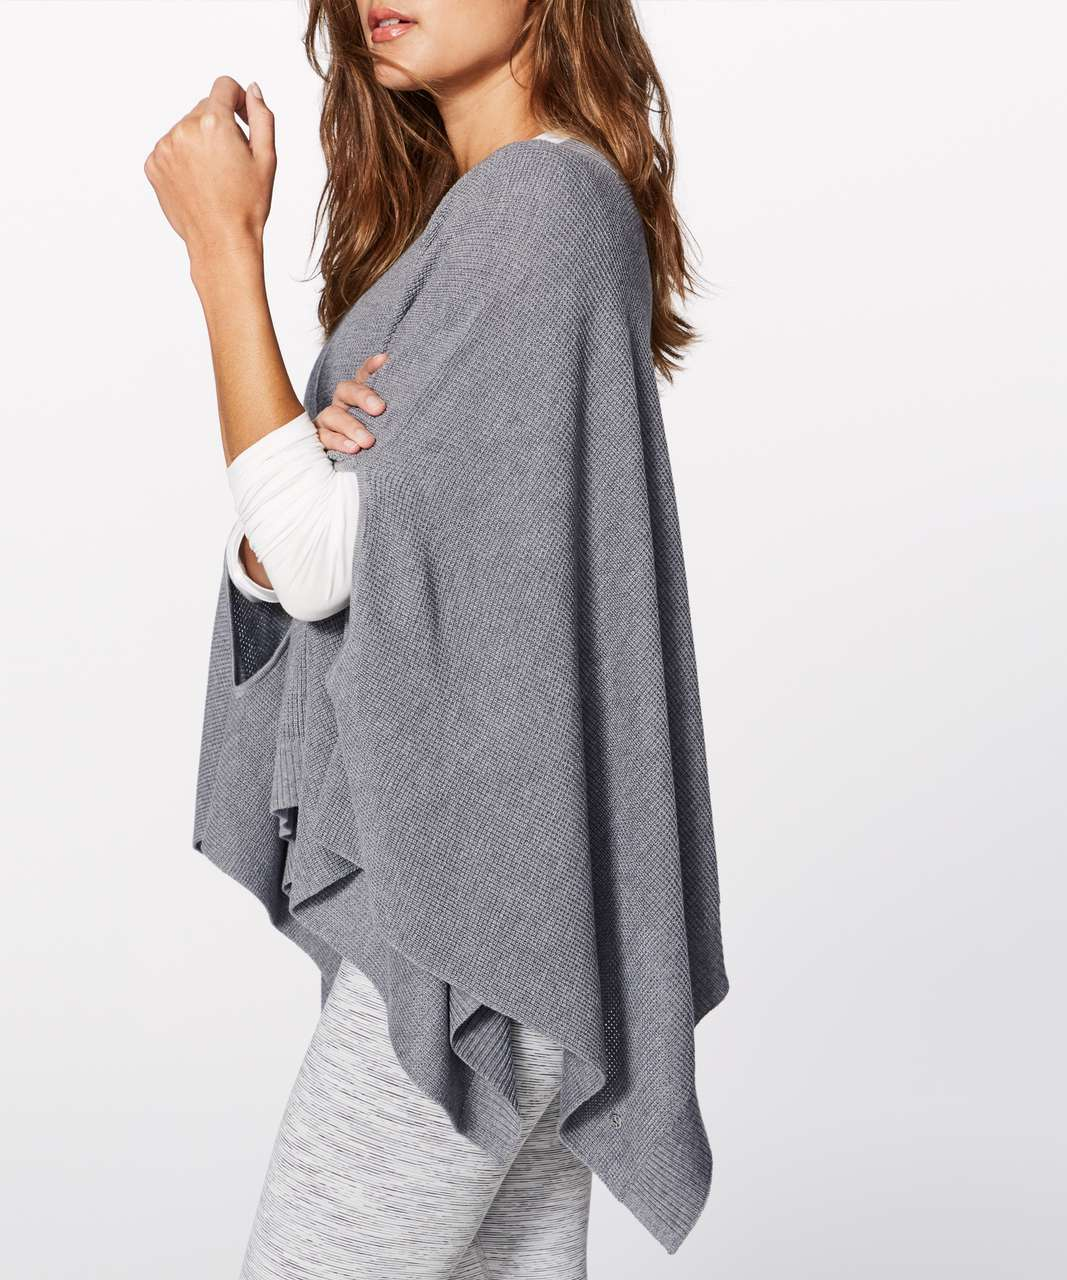 Lululemon Forward Flow Cape - Heathered Medium Grey